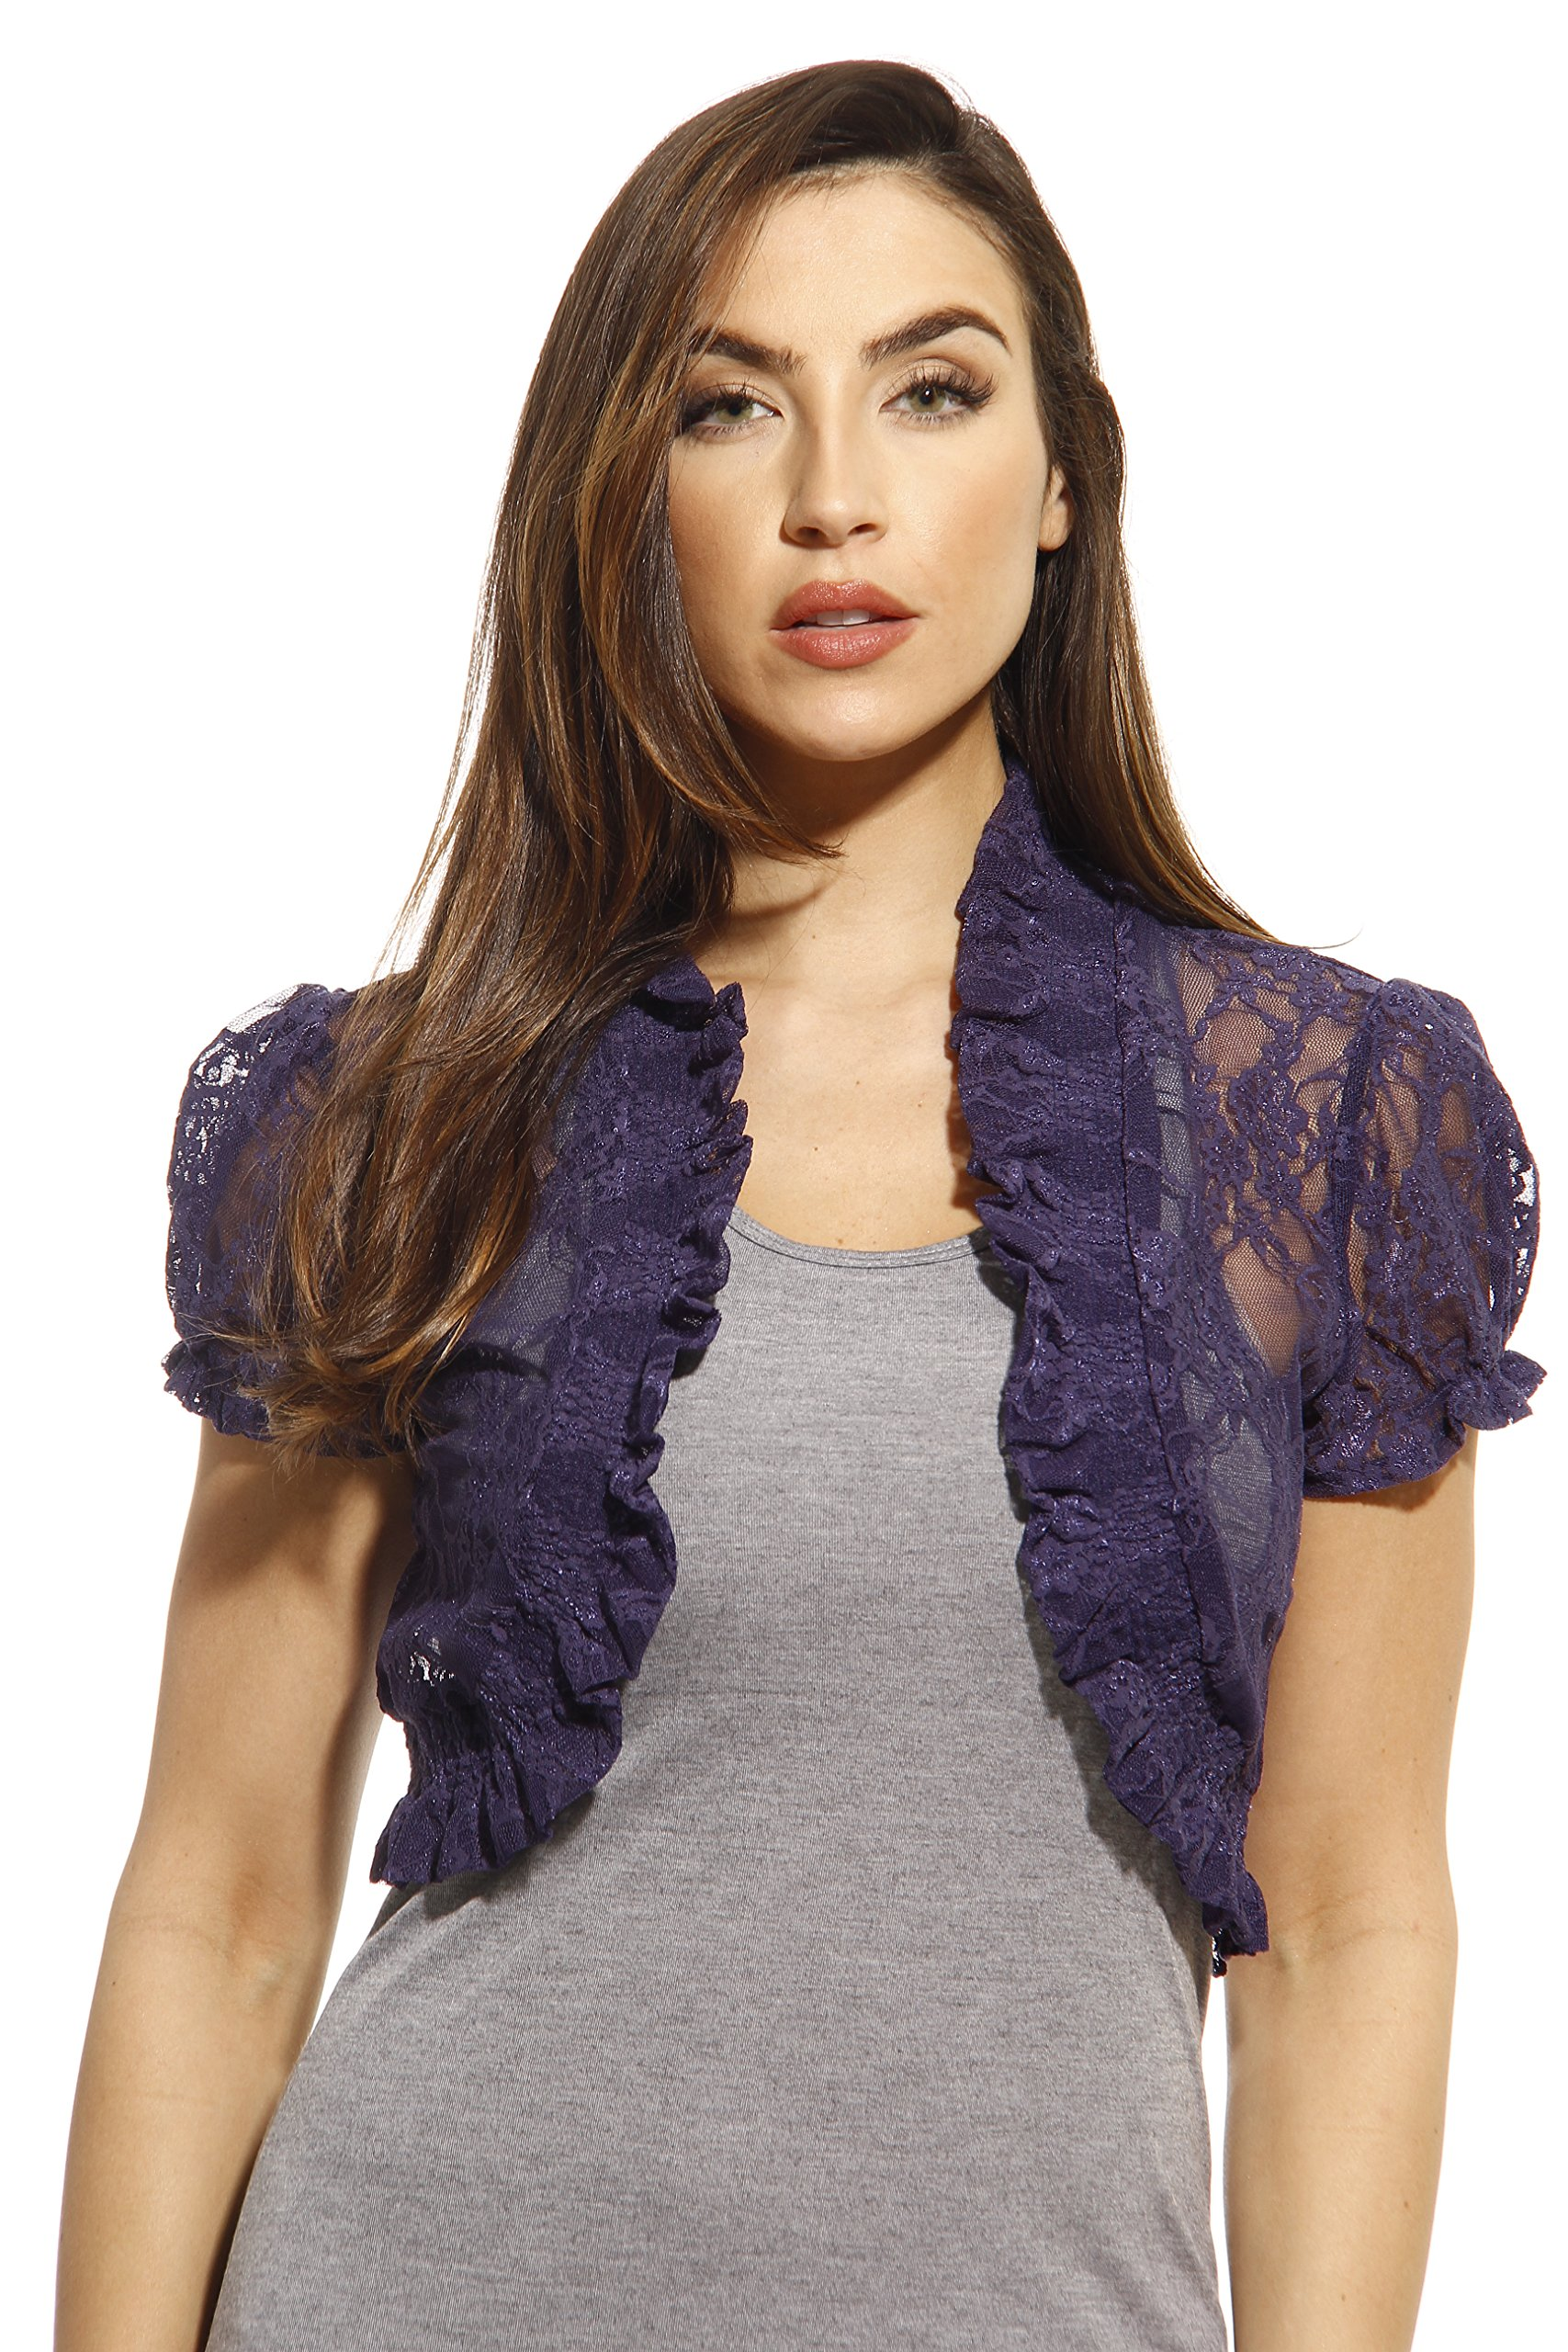 2502-NVY-S Just Love Shrug / Shrugs / Women Cardigan